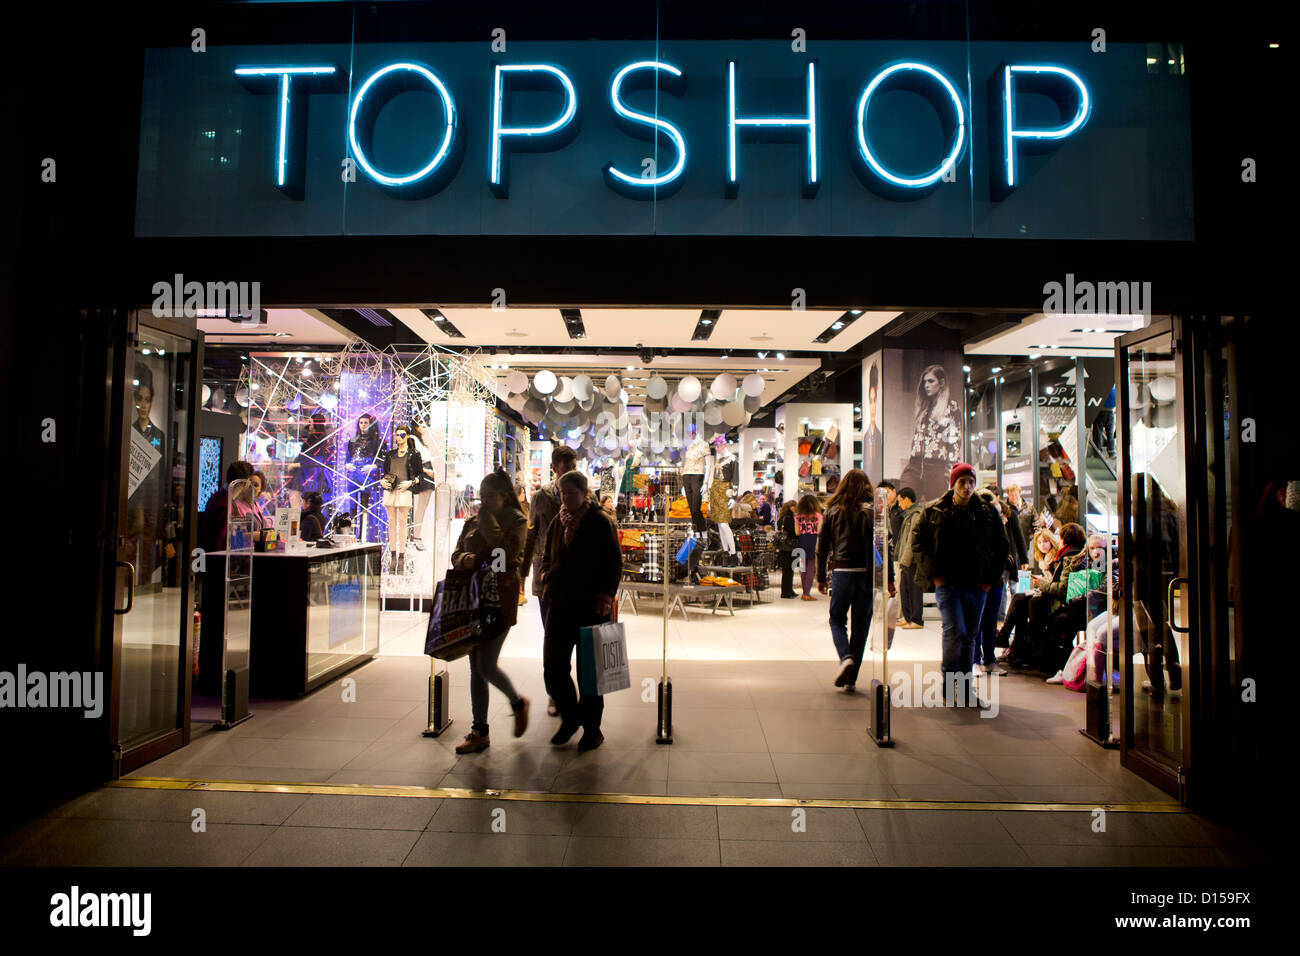 Flagship Topshop store in London, Oxford